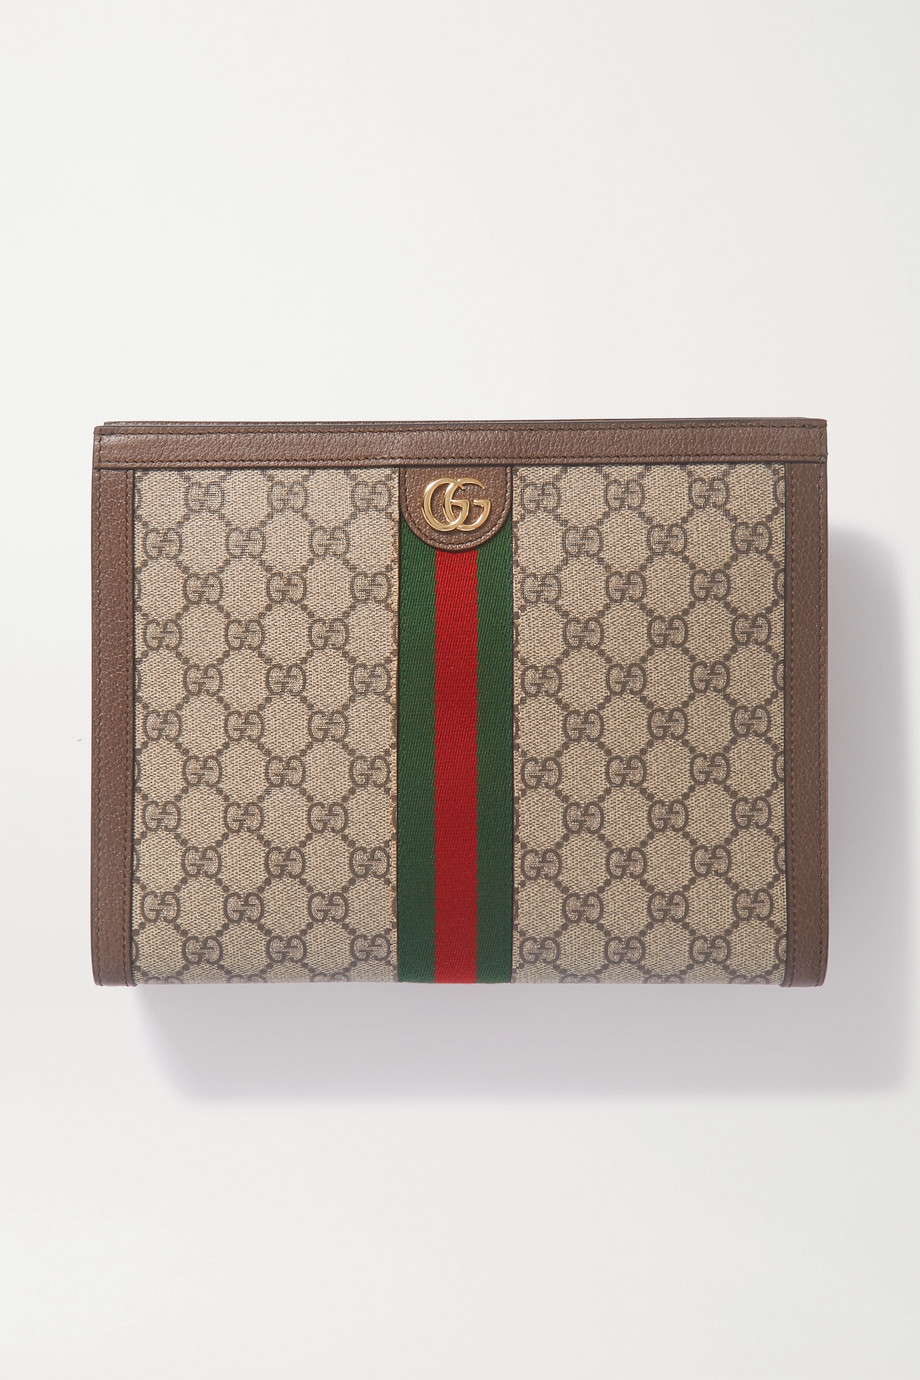 Gucci Ophidia textured leather-trimmed printed coated-canvas pouch